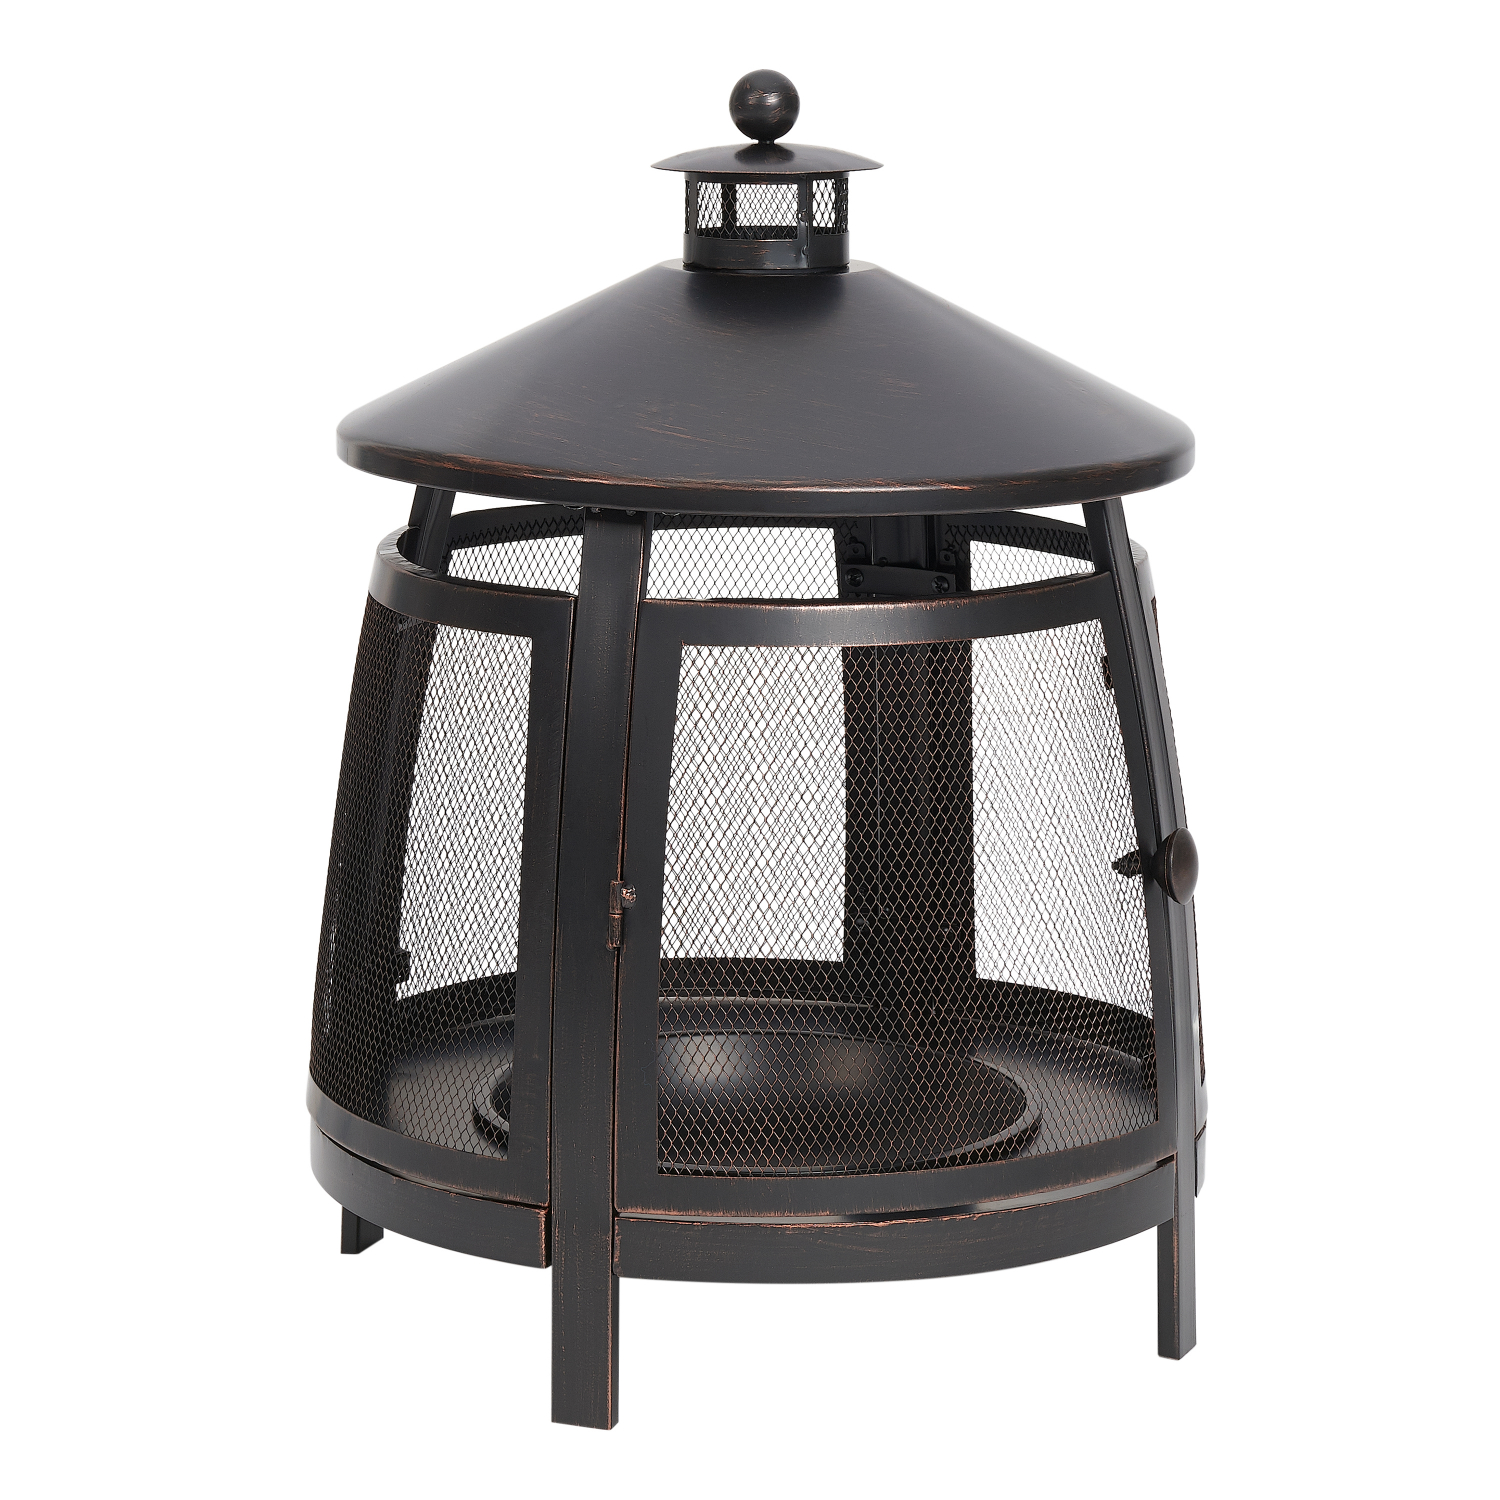 Chiminea 22-Inch Round Steel Wood Burning Fire Pit Outdoor ...